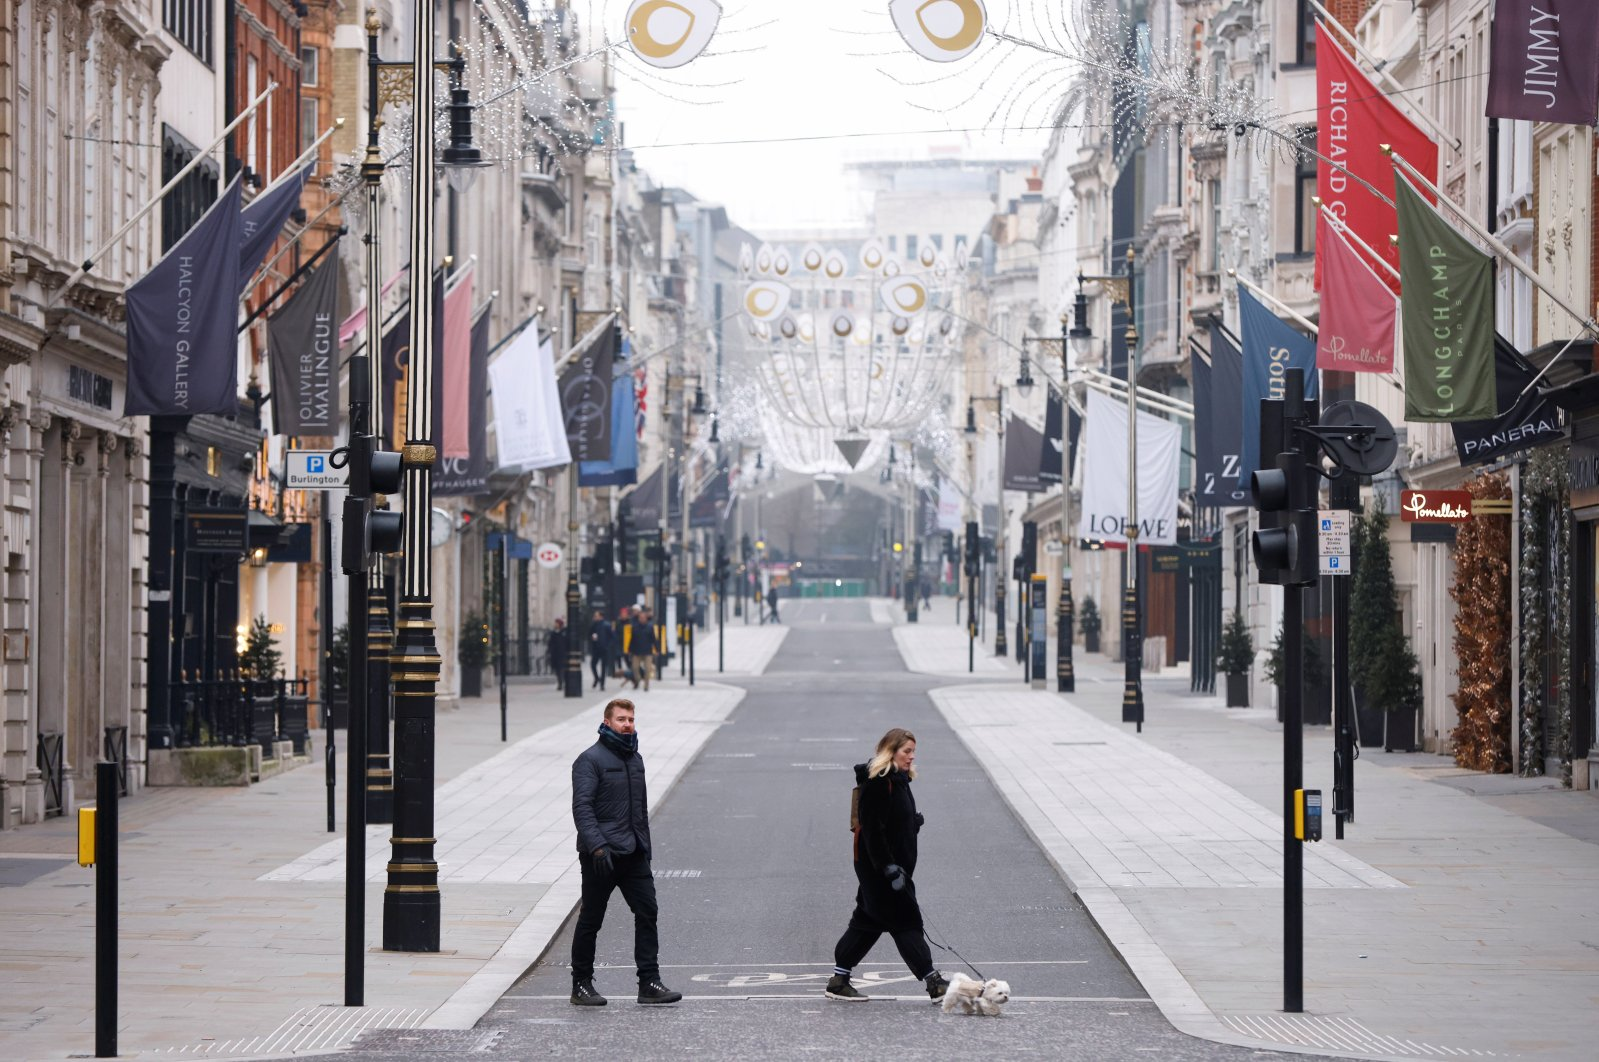 People walk their dog along New Bond Street on New Year's Day amid the coronavirus disease (COVID-19) outbreak, in London, Britain Jan. 1, 2021. (Reuters Photo)